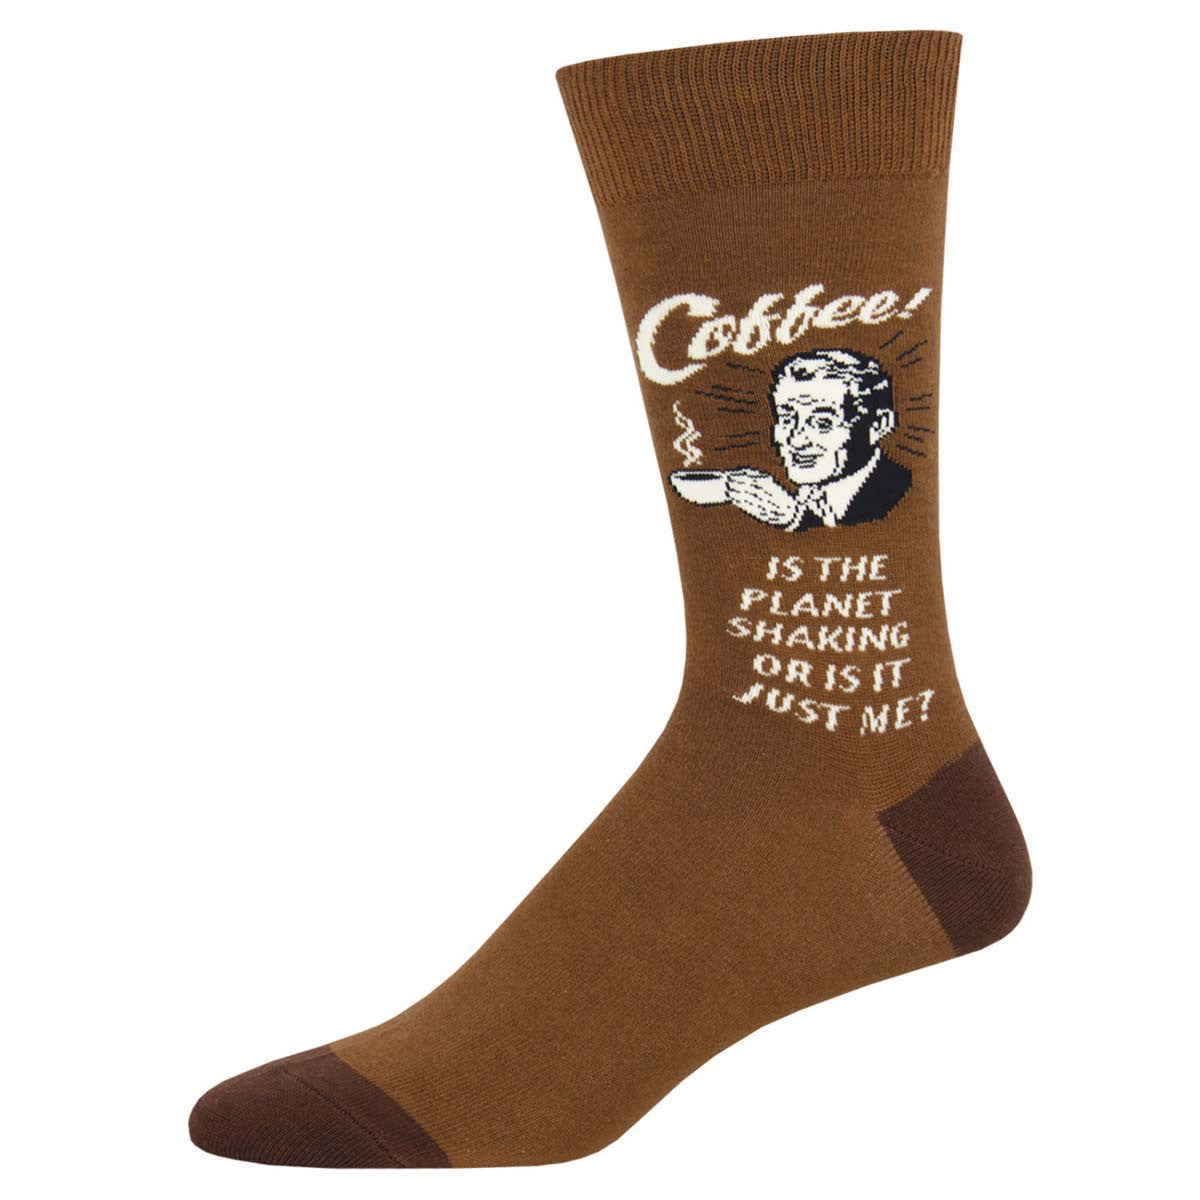 No Beans About It Socks - Tractor Beam Apparel